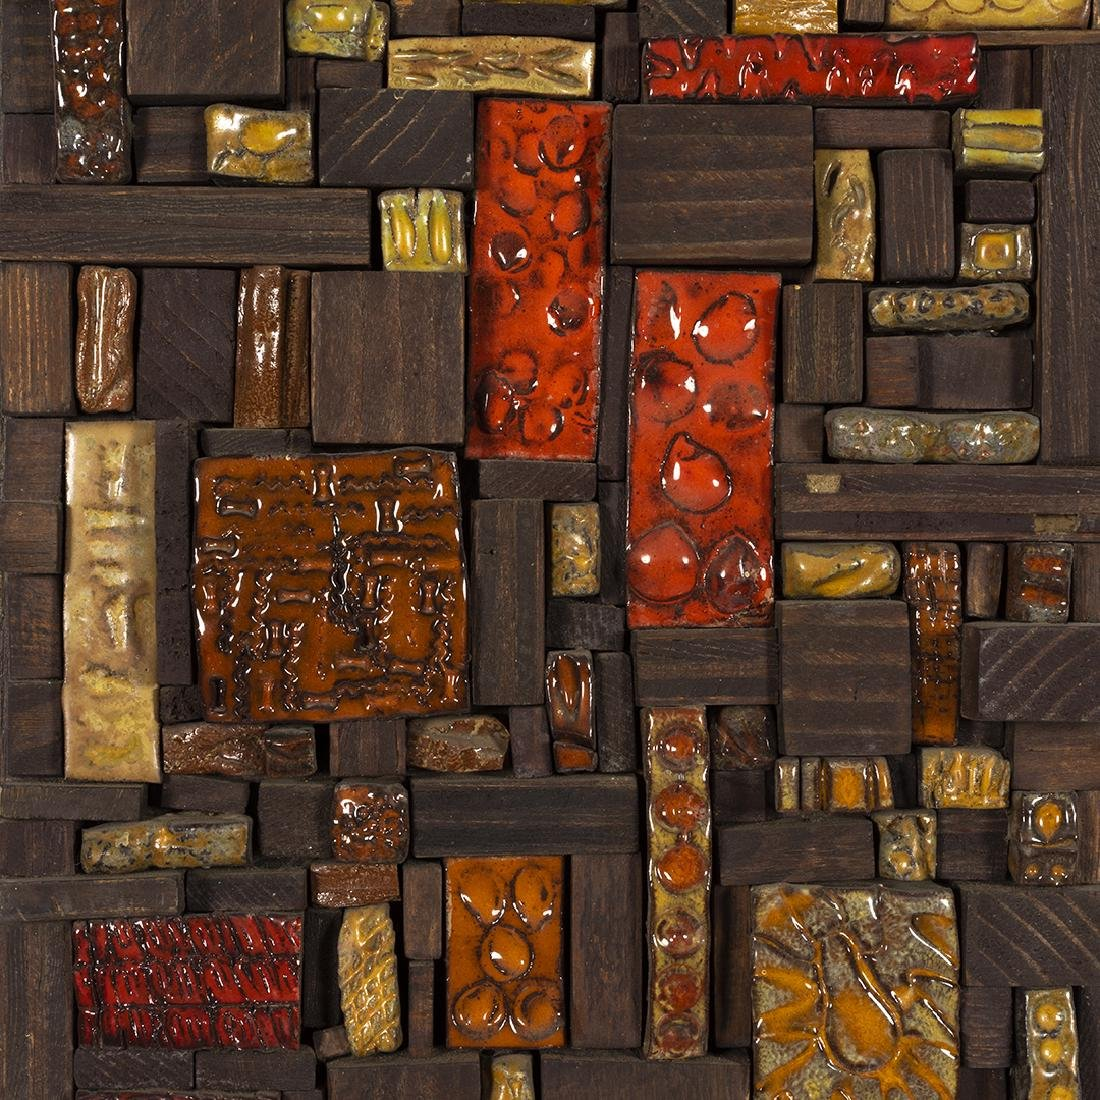 Mixed Media Assemblage - 2